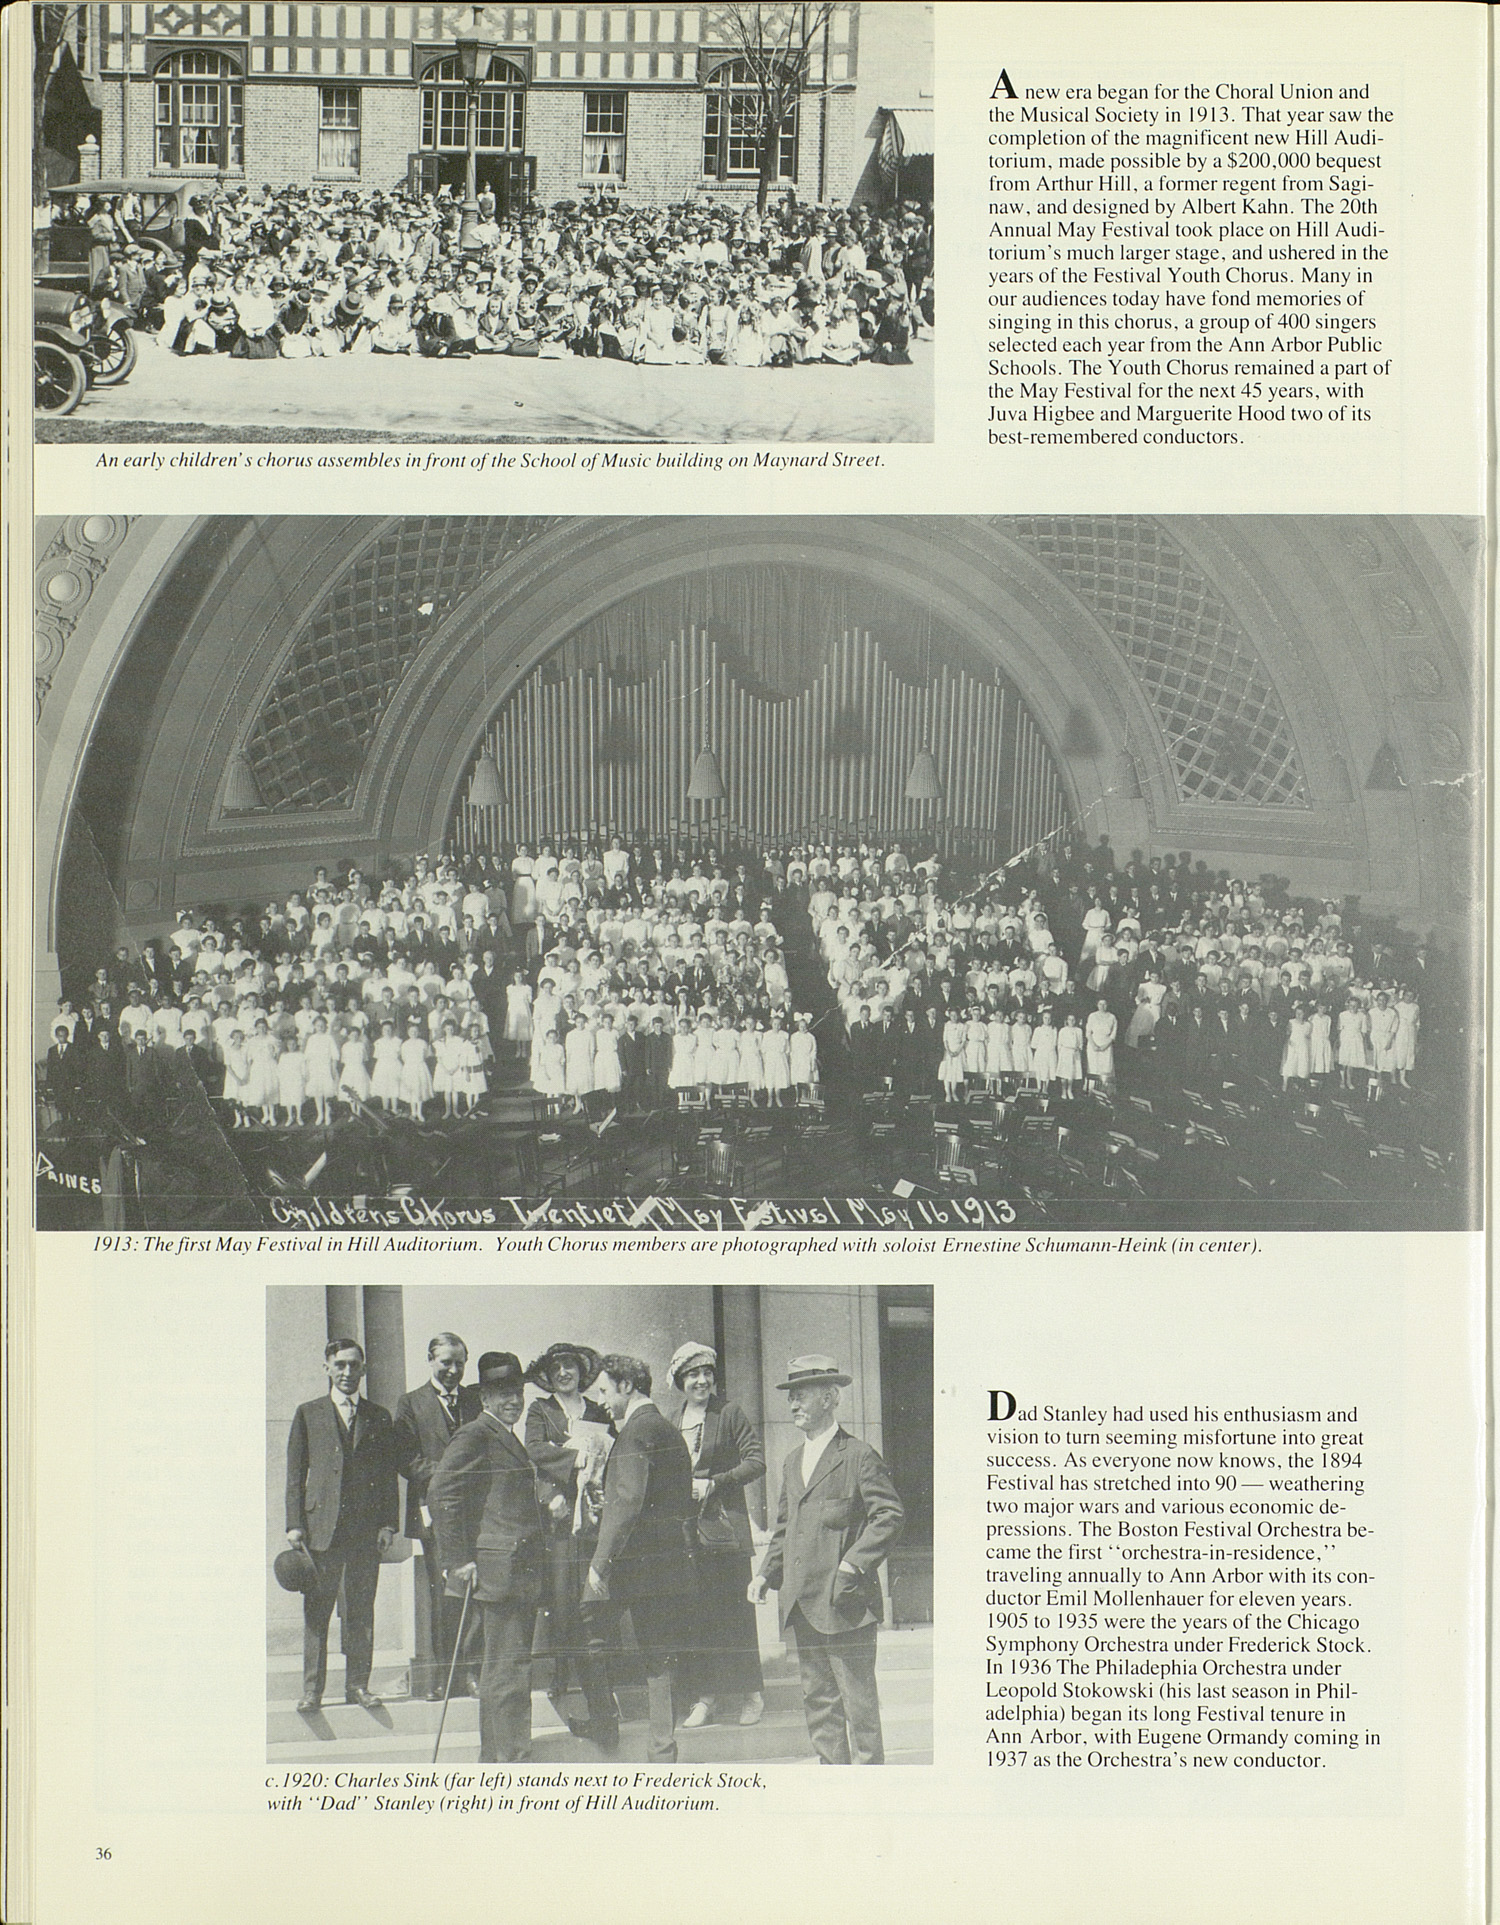 UMS Concert Program, April 27, 28, 29, 30, 1983: Ninetieth Ann Arbor May Festival 1983 -- The Philadelphia Orchestra image